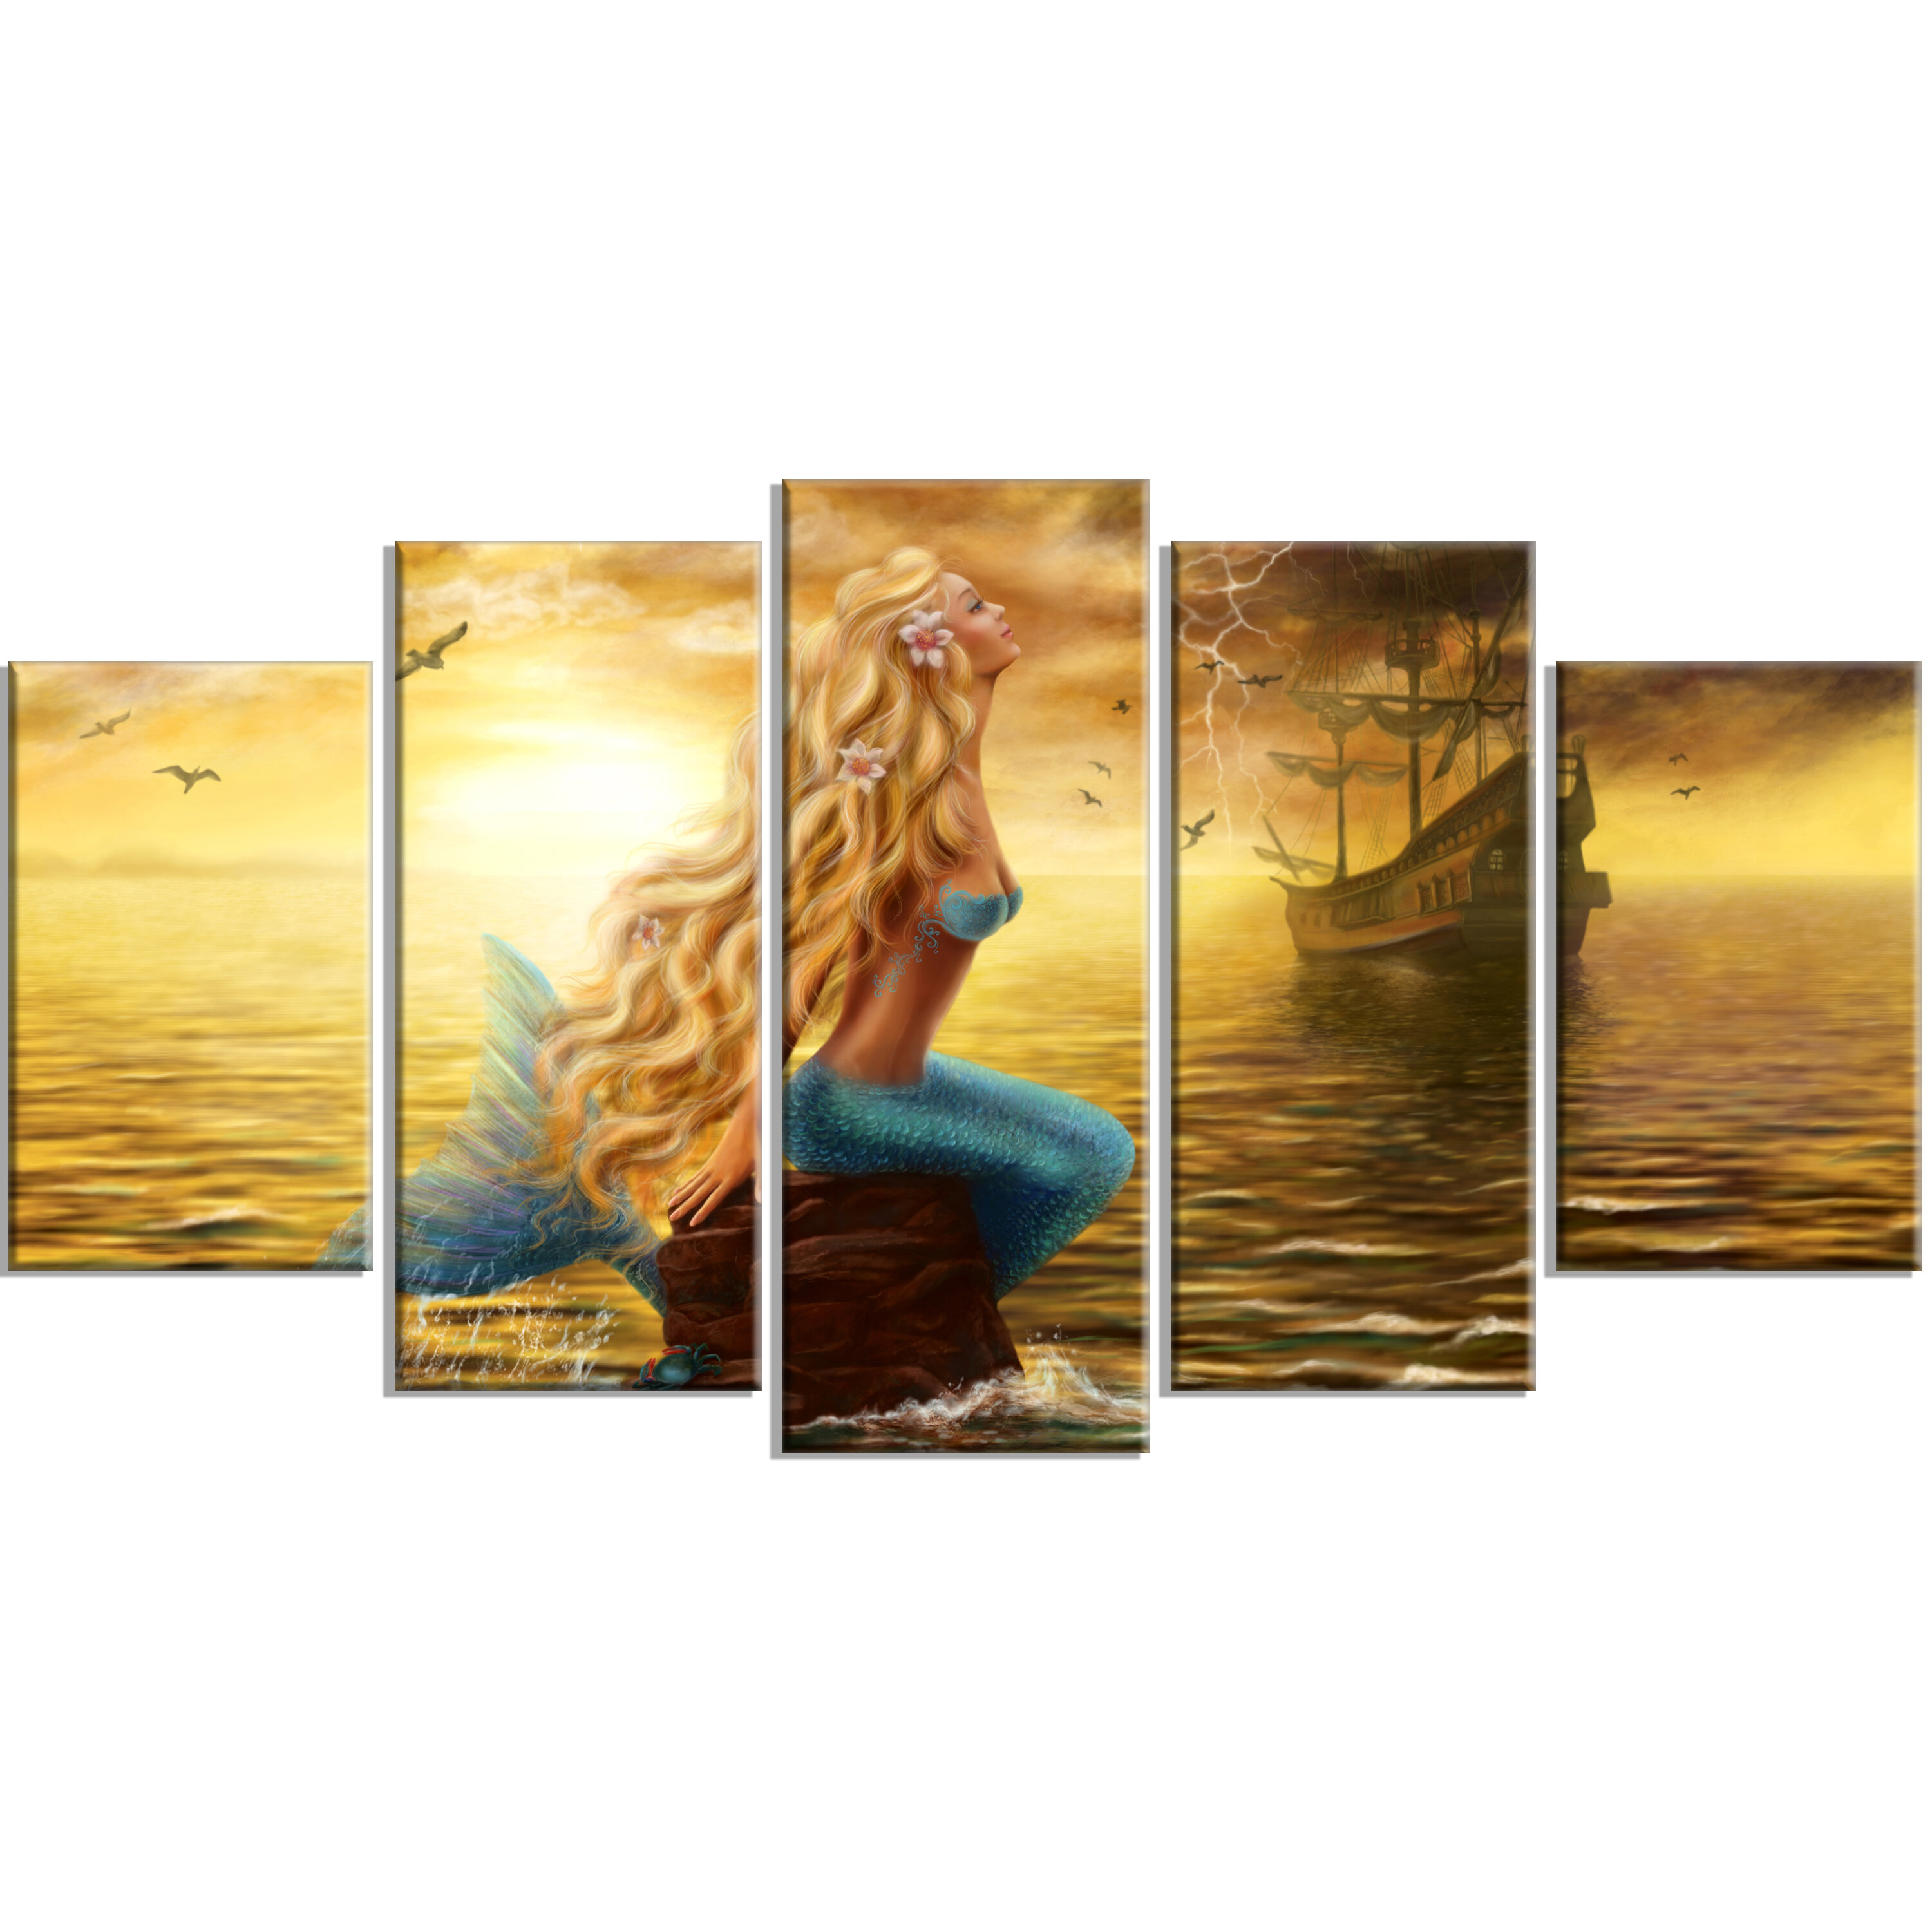 DesignArt \'Sea Mermaid with Ghost Ship\' 5 Piece Wall Art on Wrapped ...